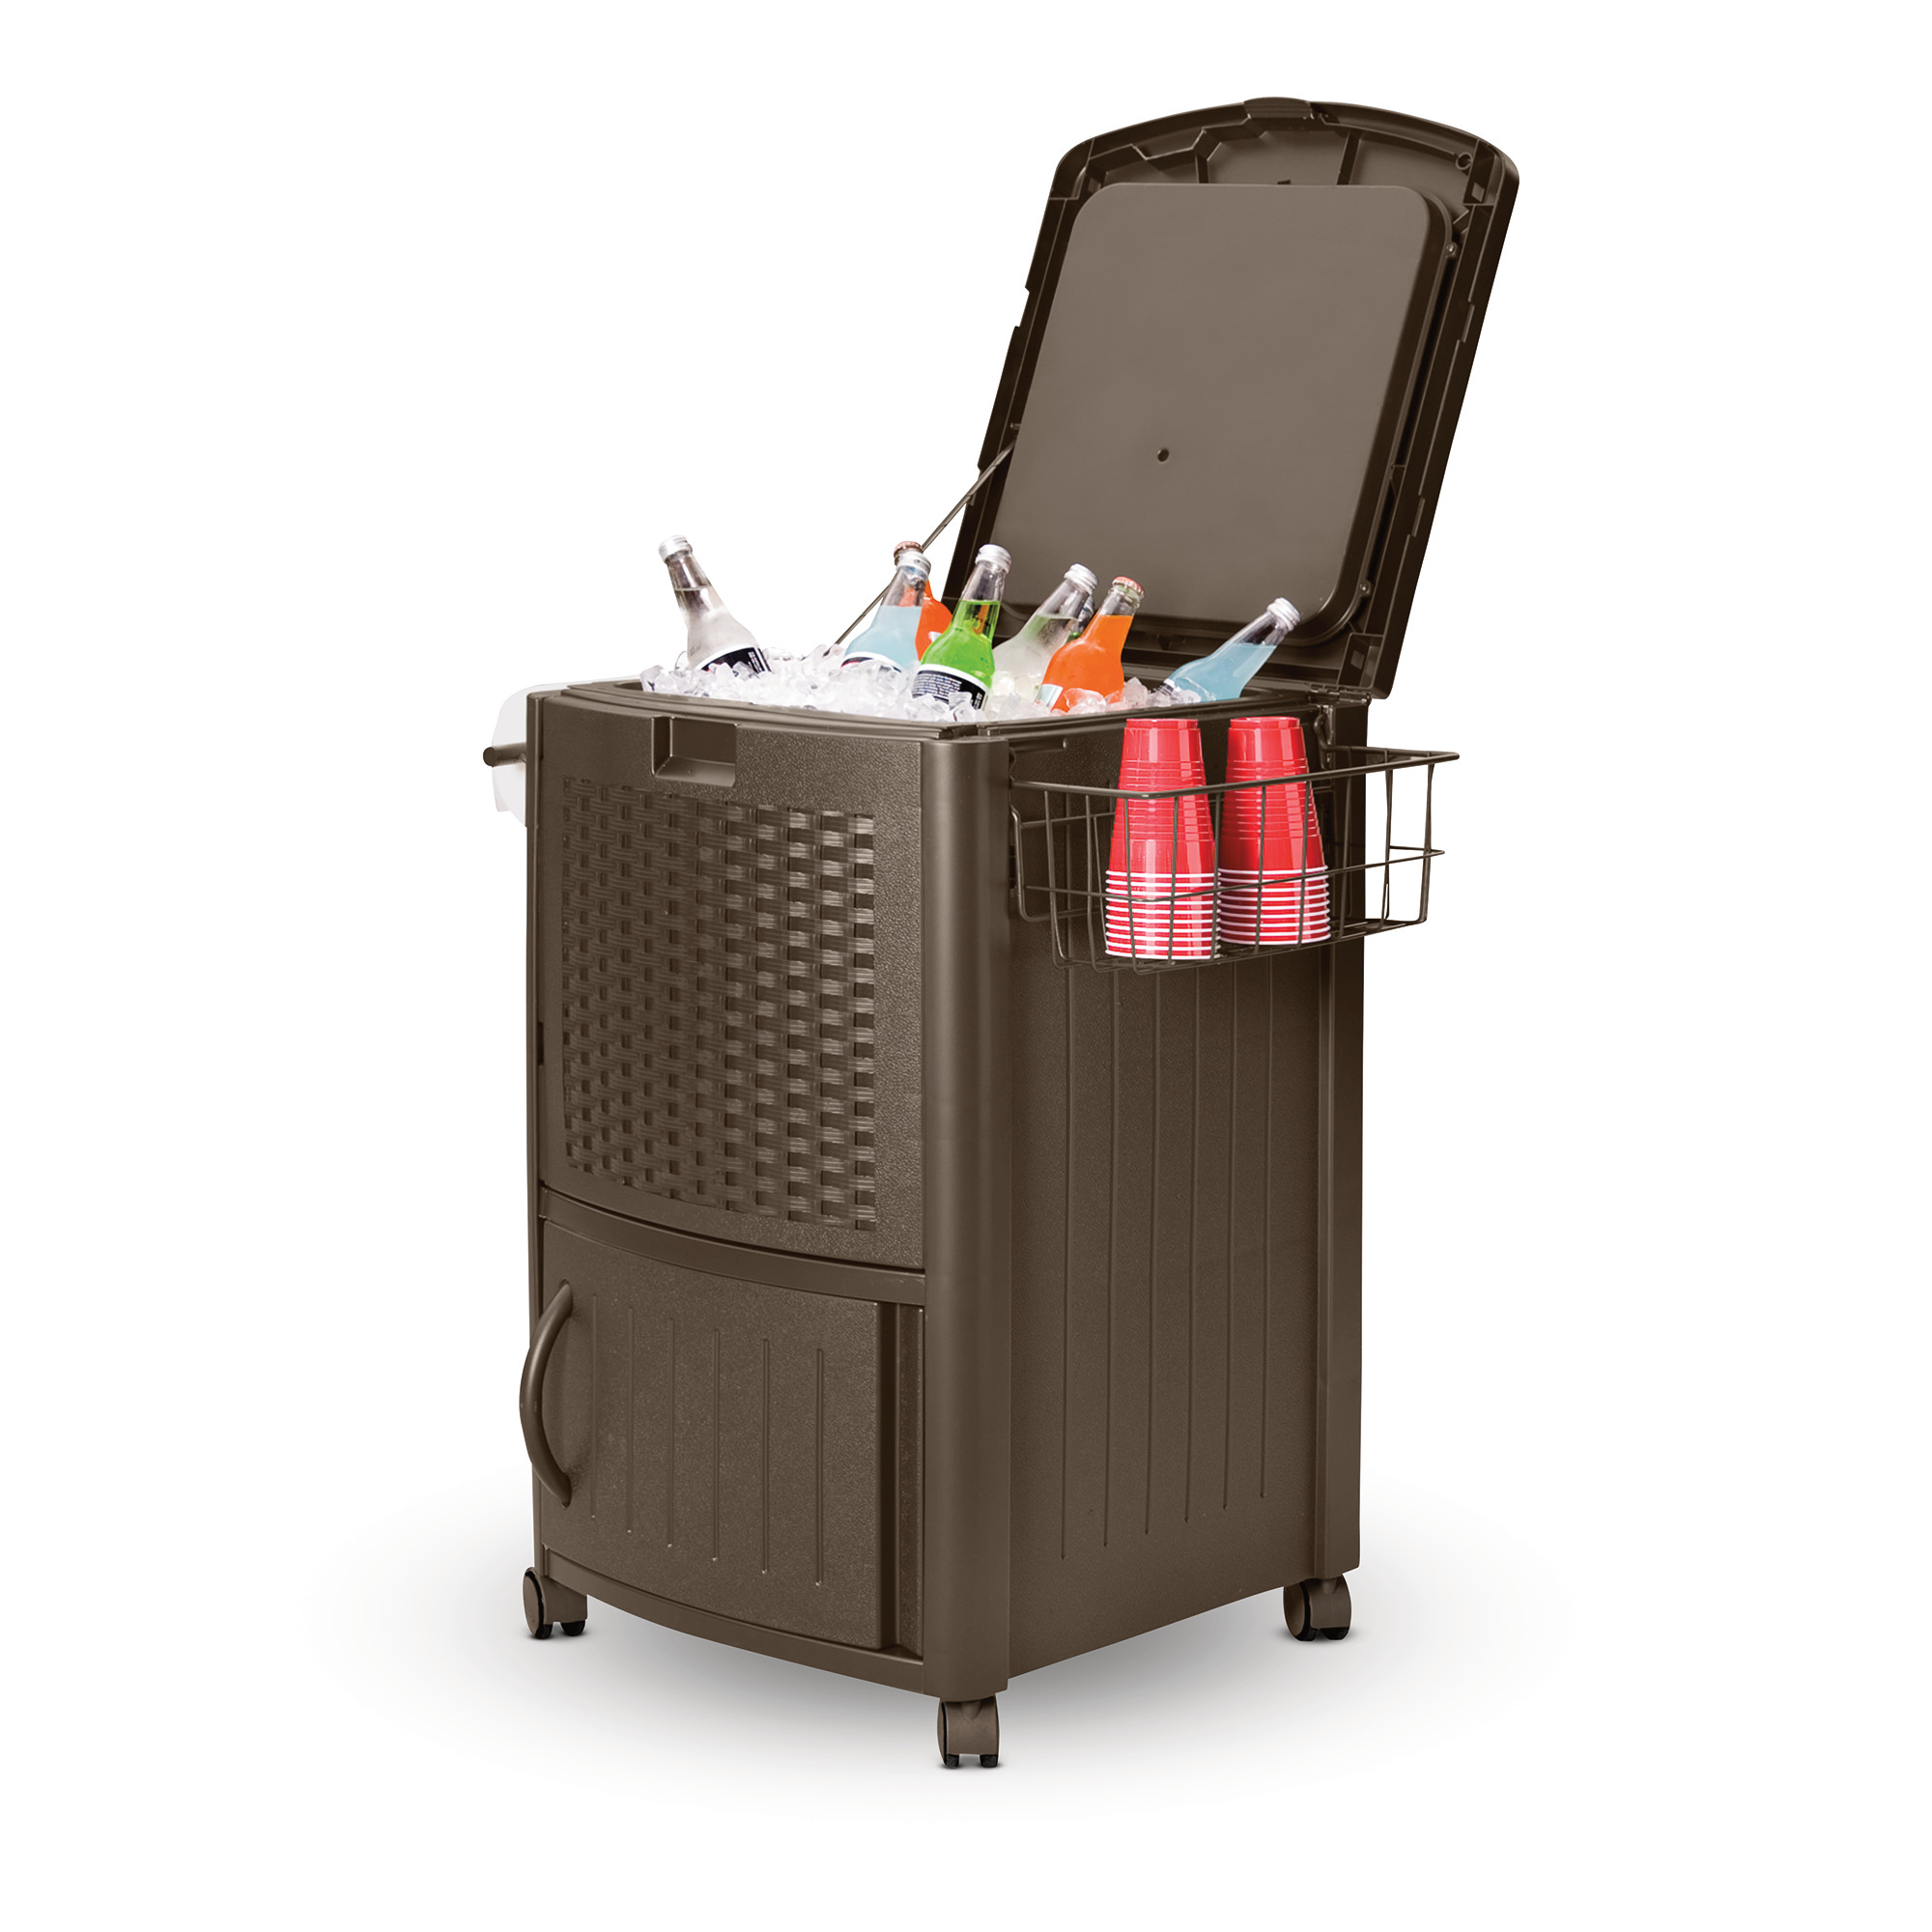 Suncast Wicker Patio Cooler Cart with Cabinet, DCCW3000